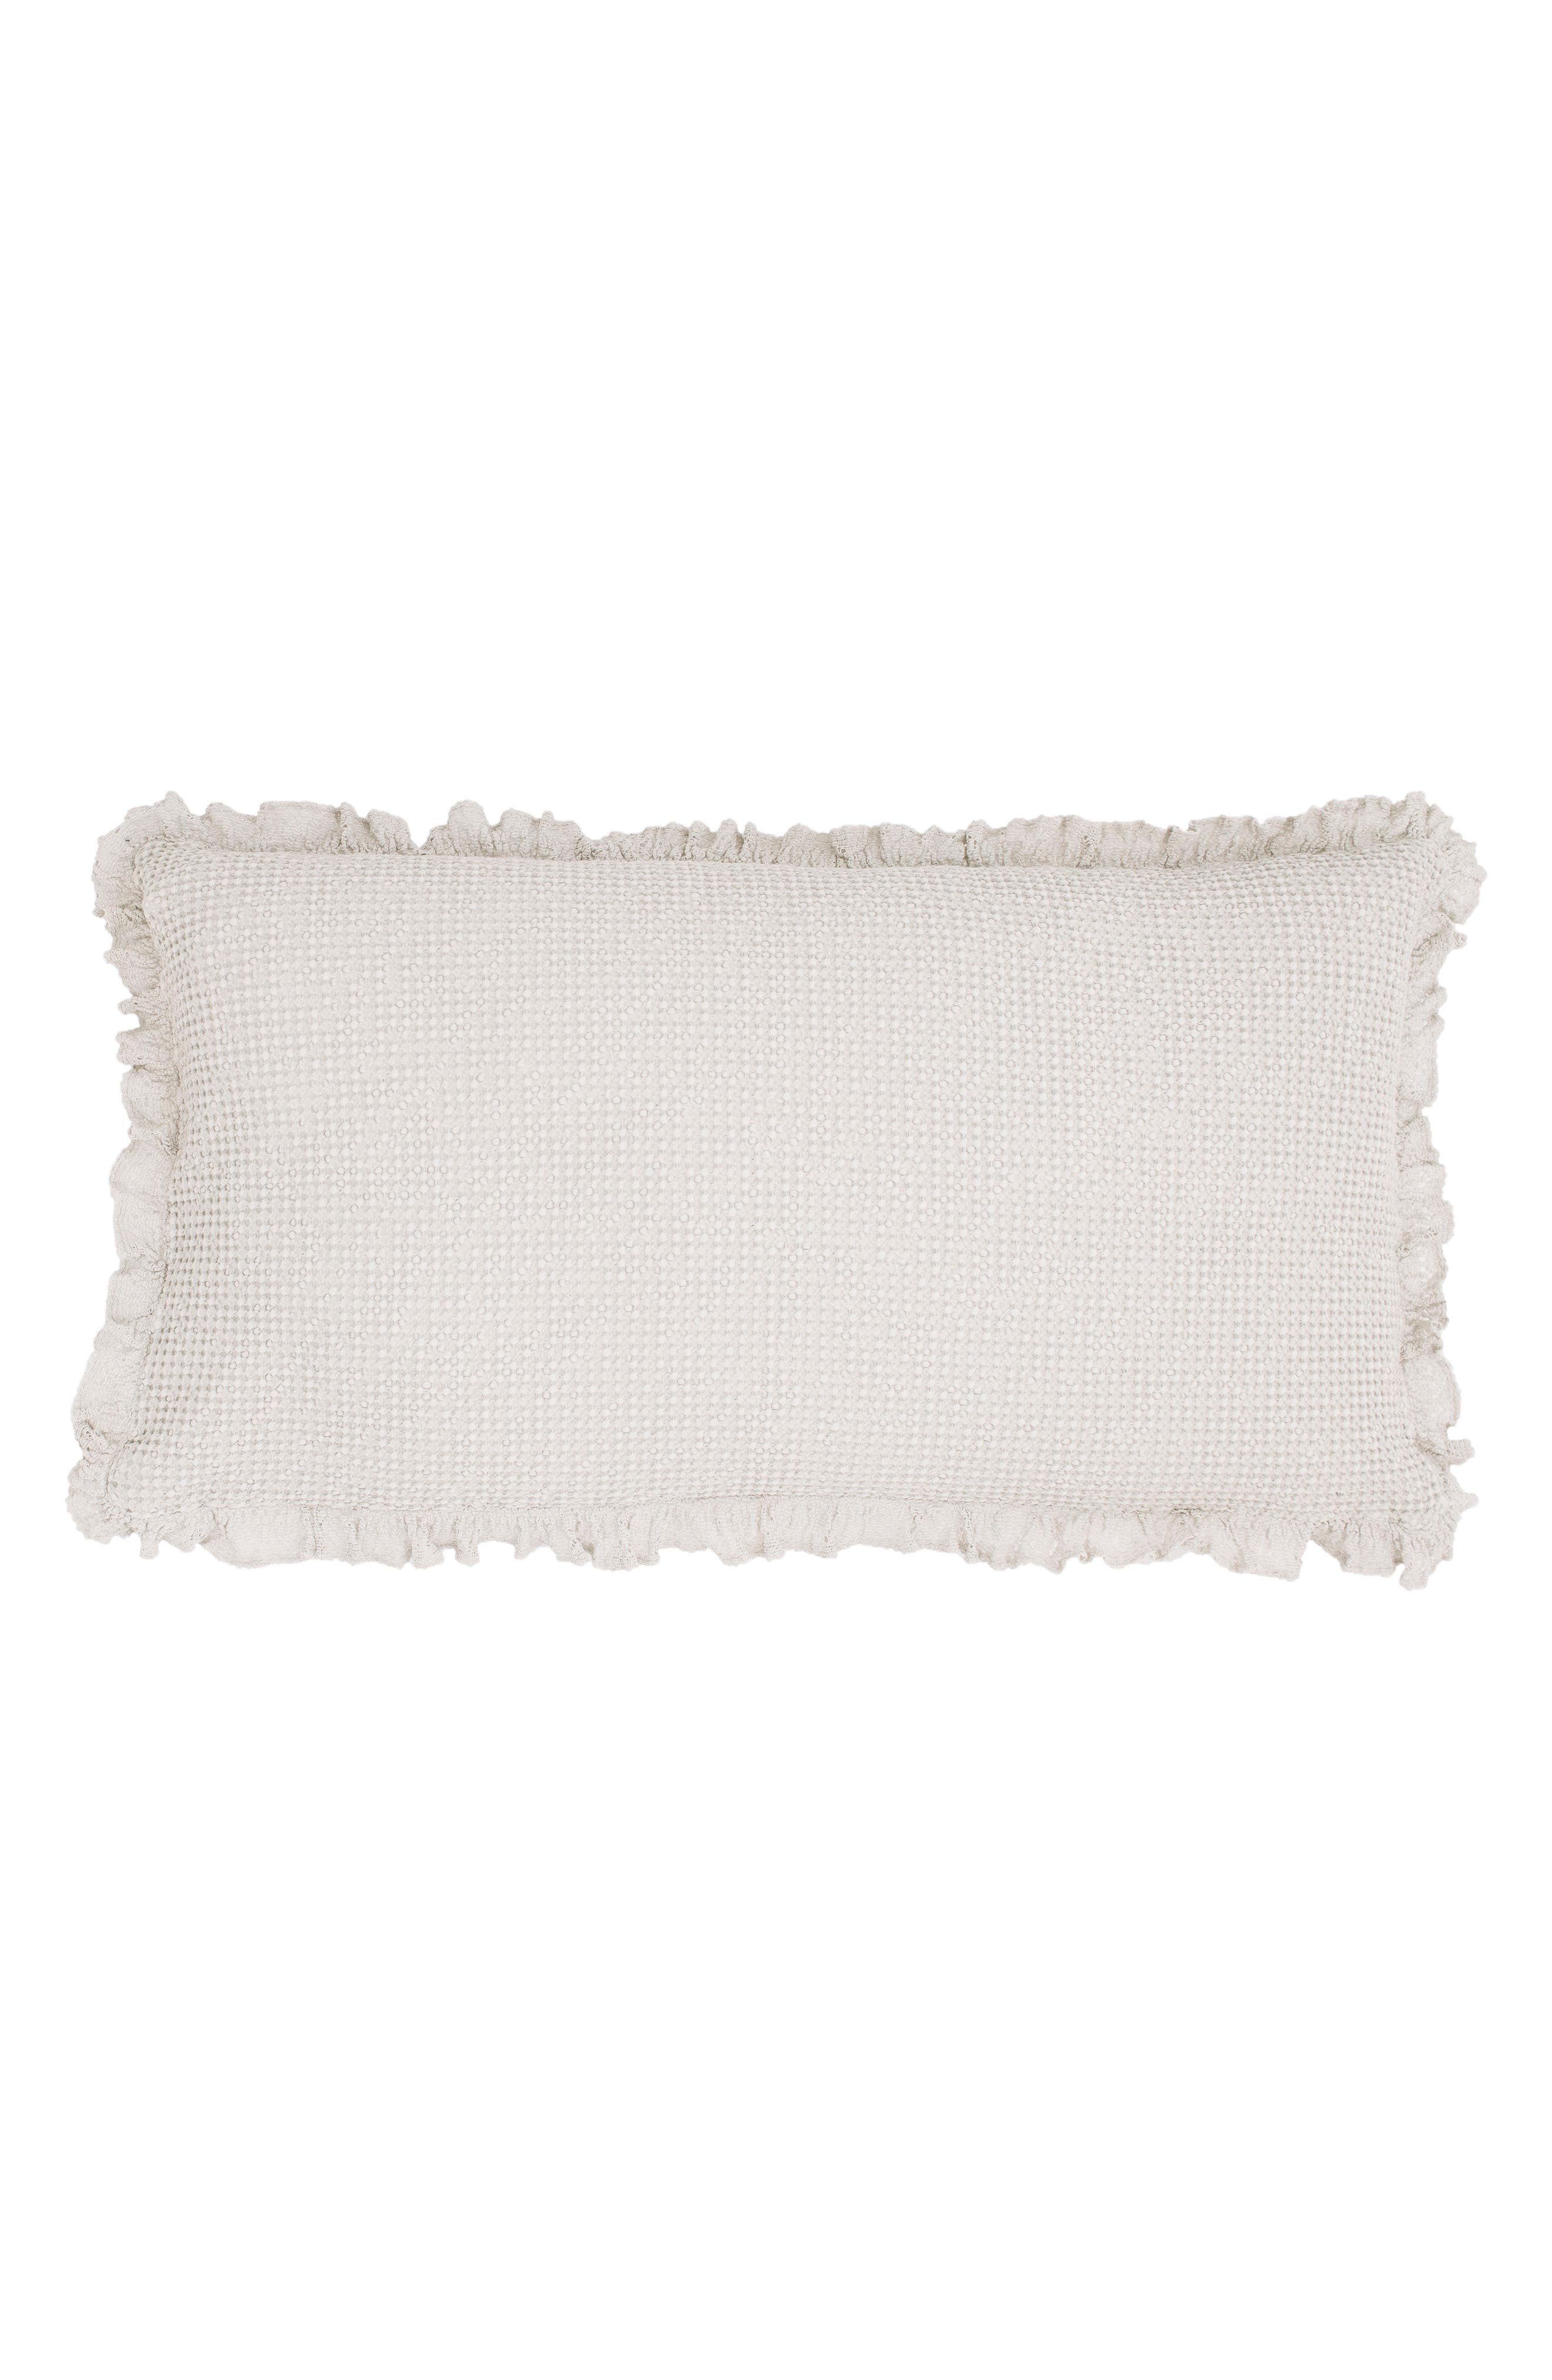 Lace Ruffle Accent Pillow,                         Main,                         color, 060